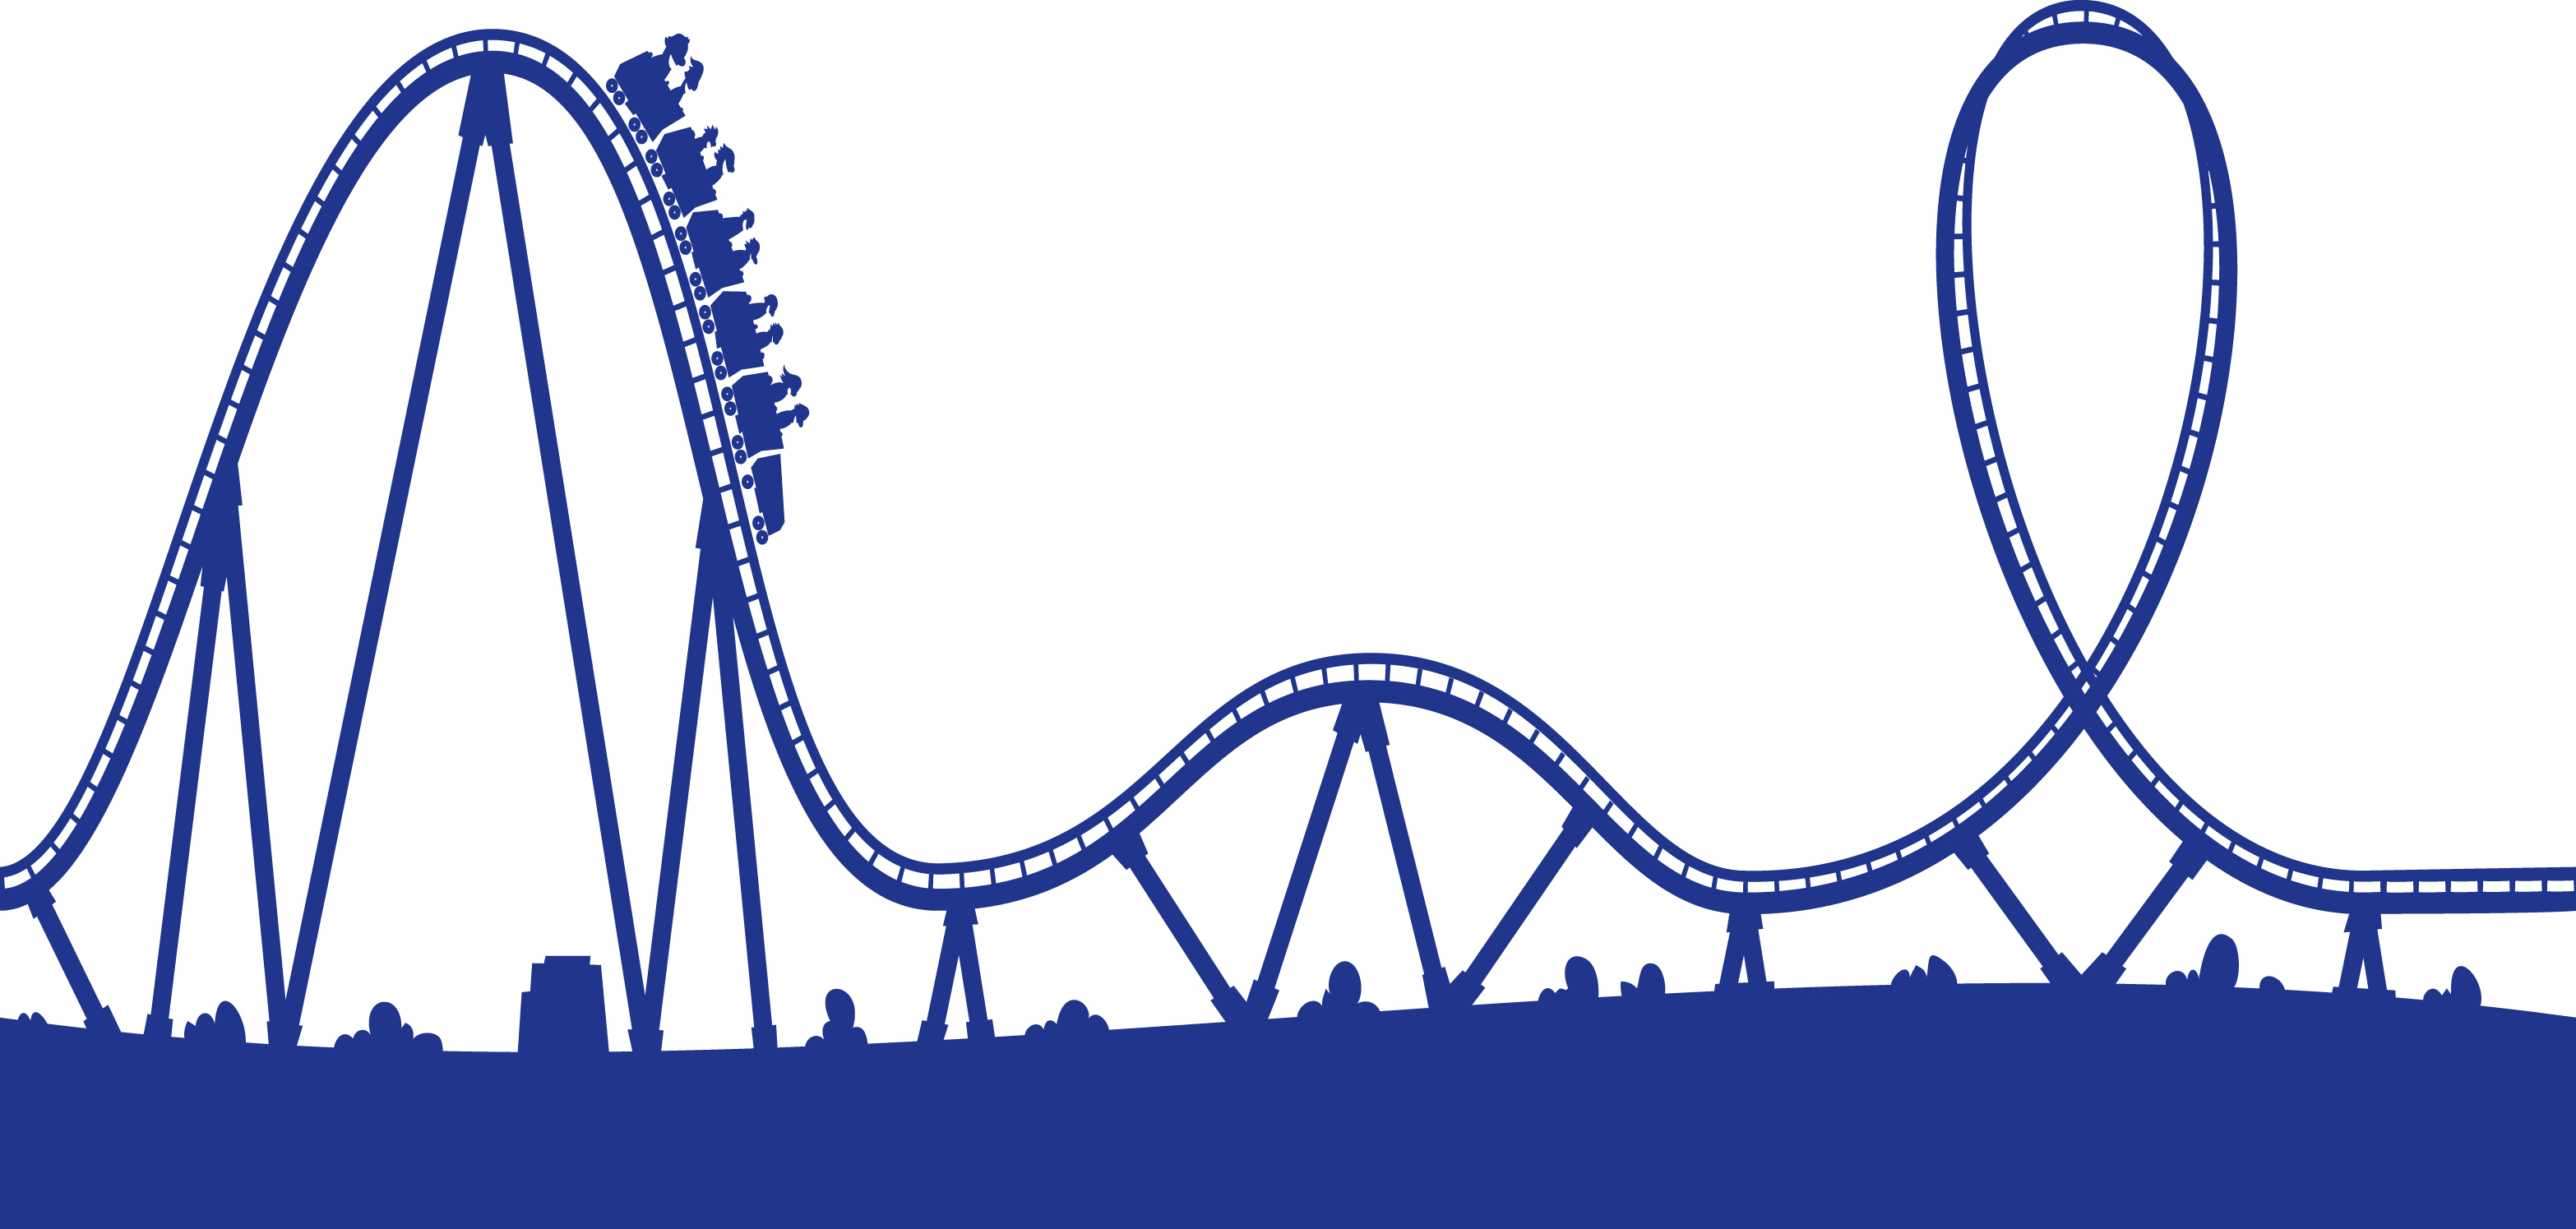 Roller Coaster Track Clipart-Roller coaster track clipart-16